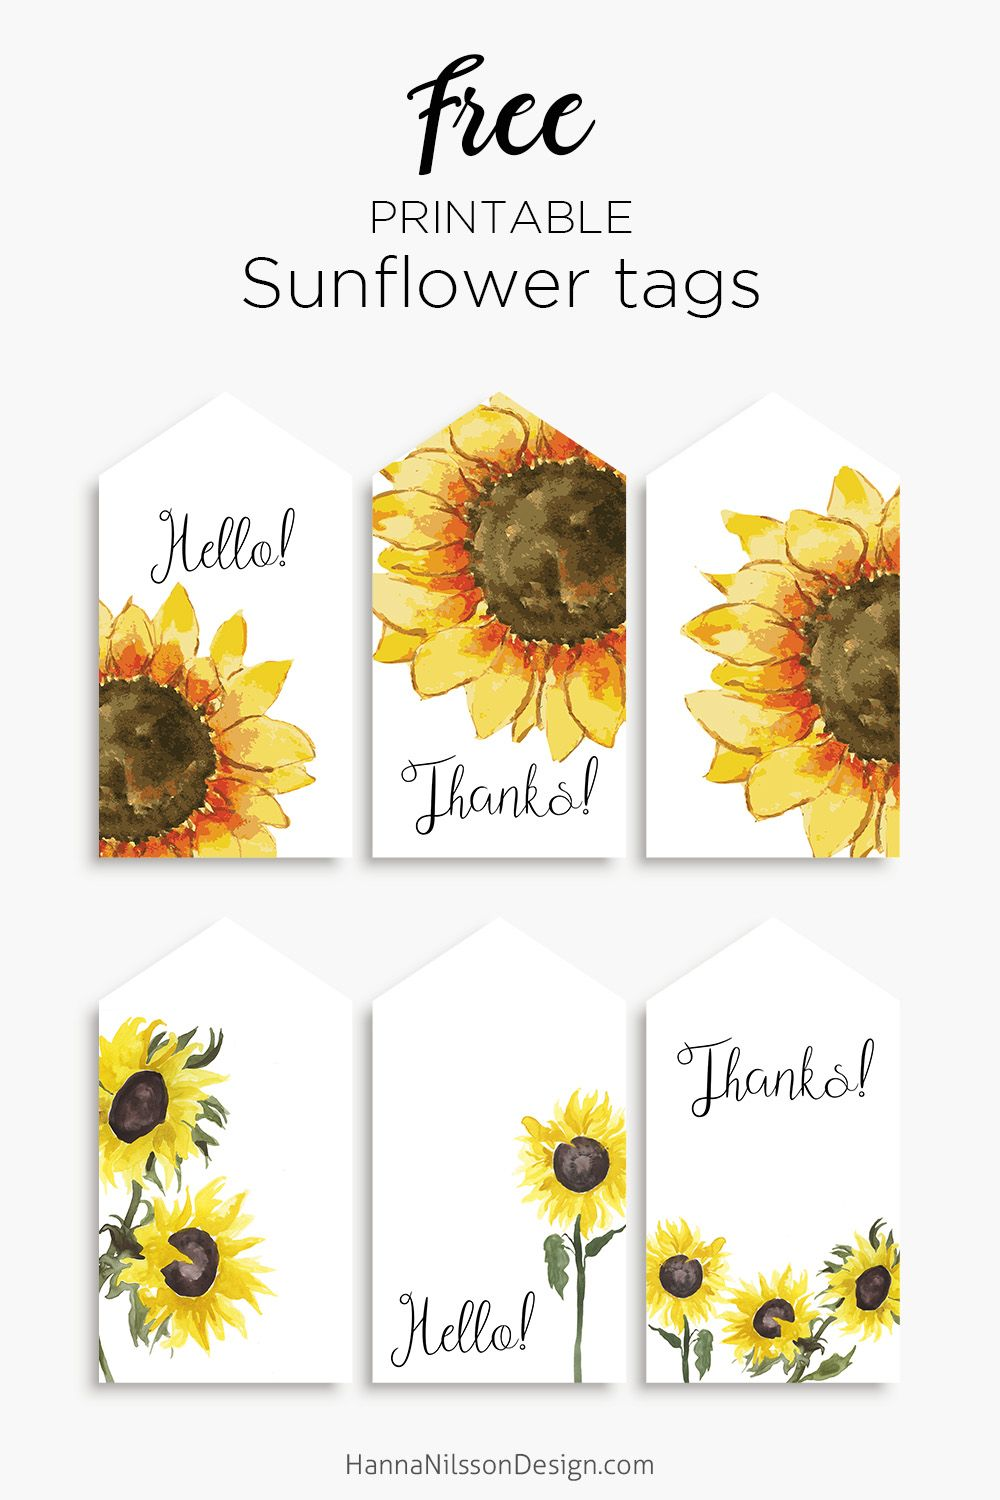 image relating to Printable Pictures of Sunflowers referred to as Sunflower tags Sunflowers Absolutely free printable reward tags, Present